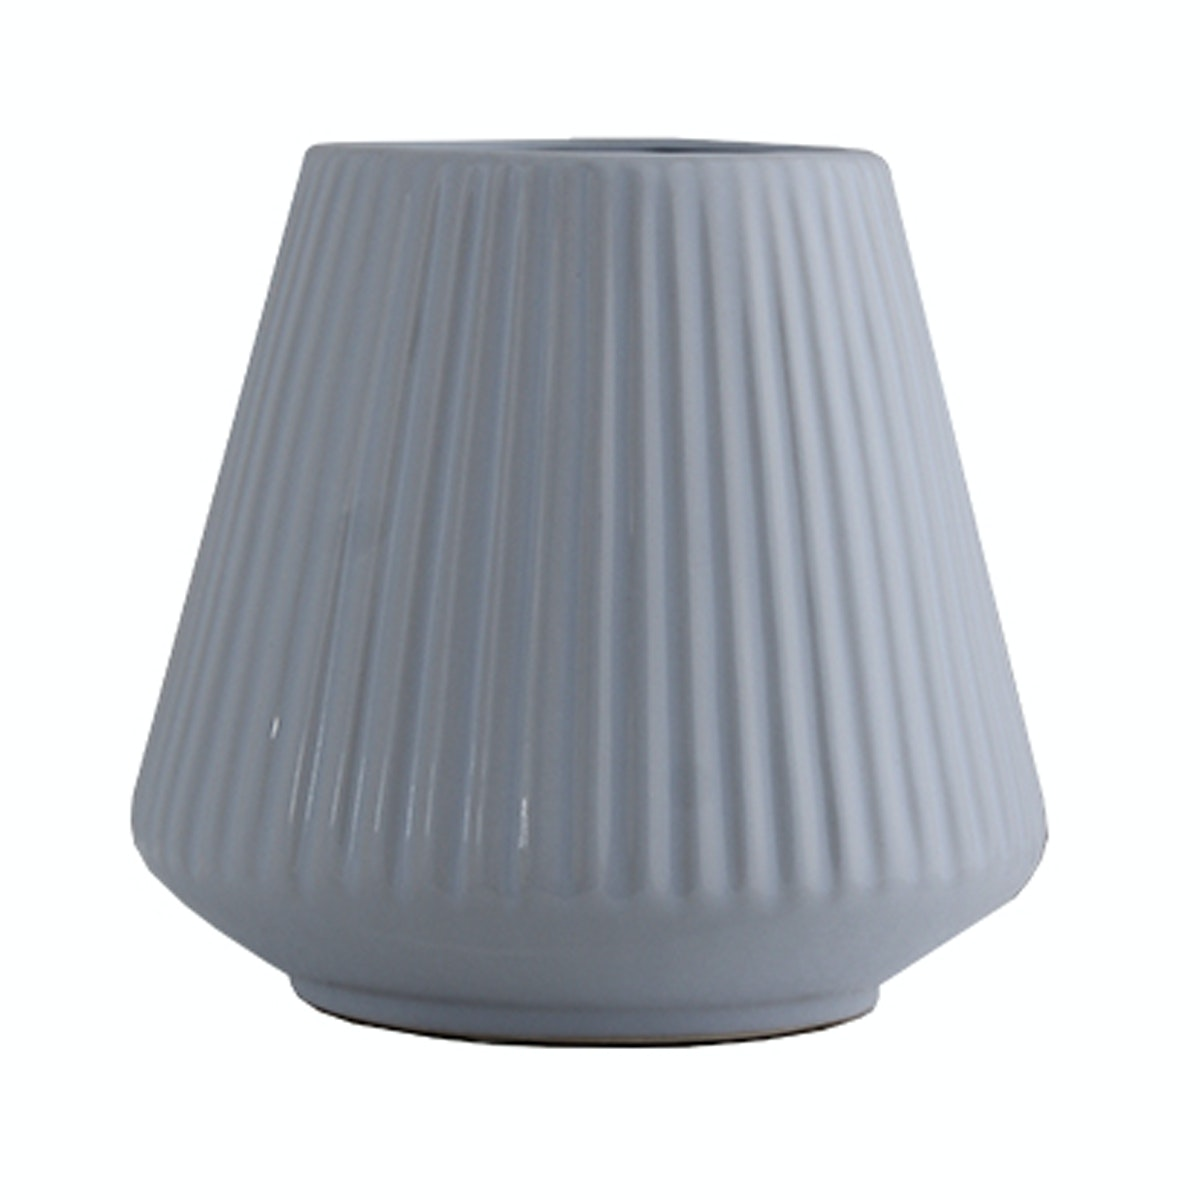 KANA FURNITURE Ceramic Vase Light White 14x14x13cm 10762 - Vas